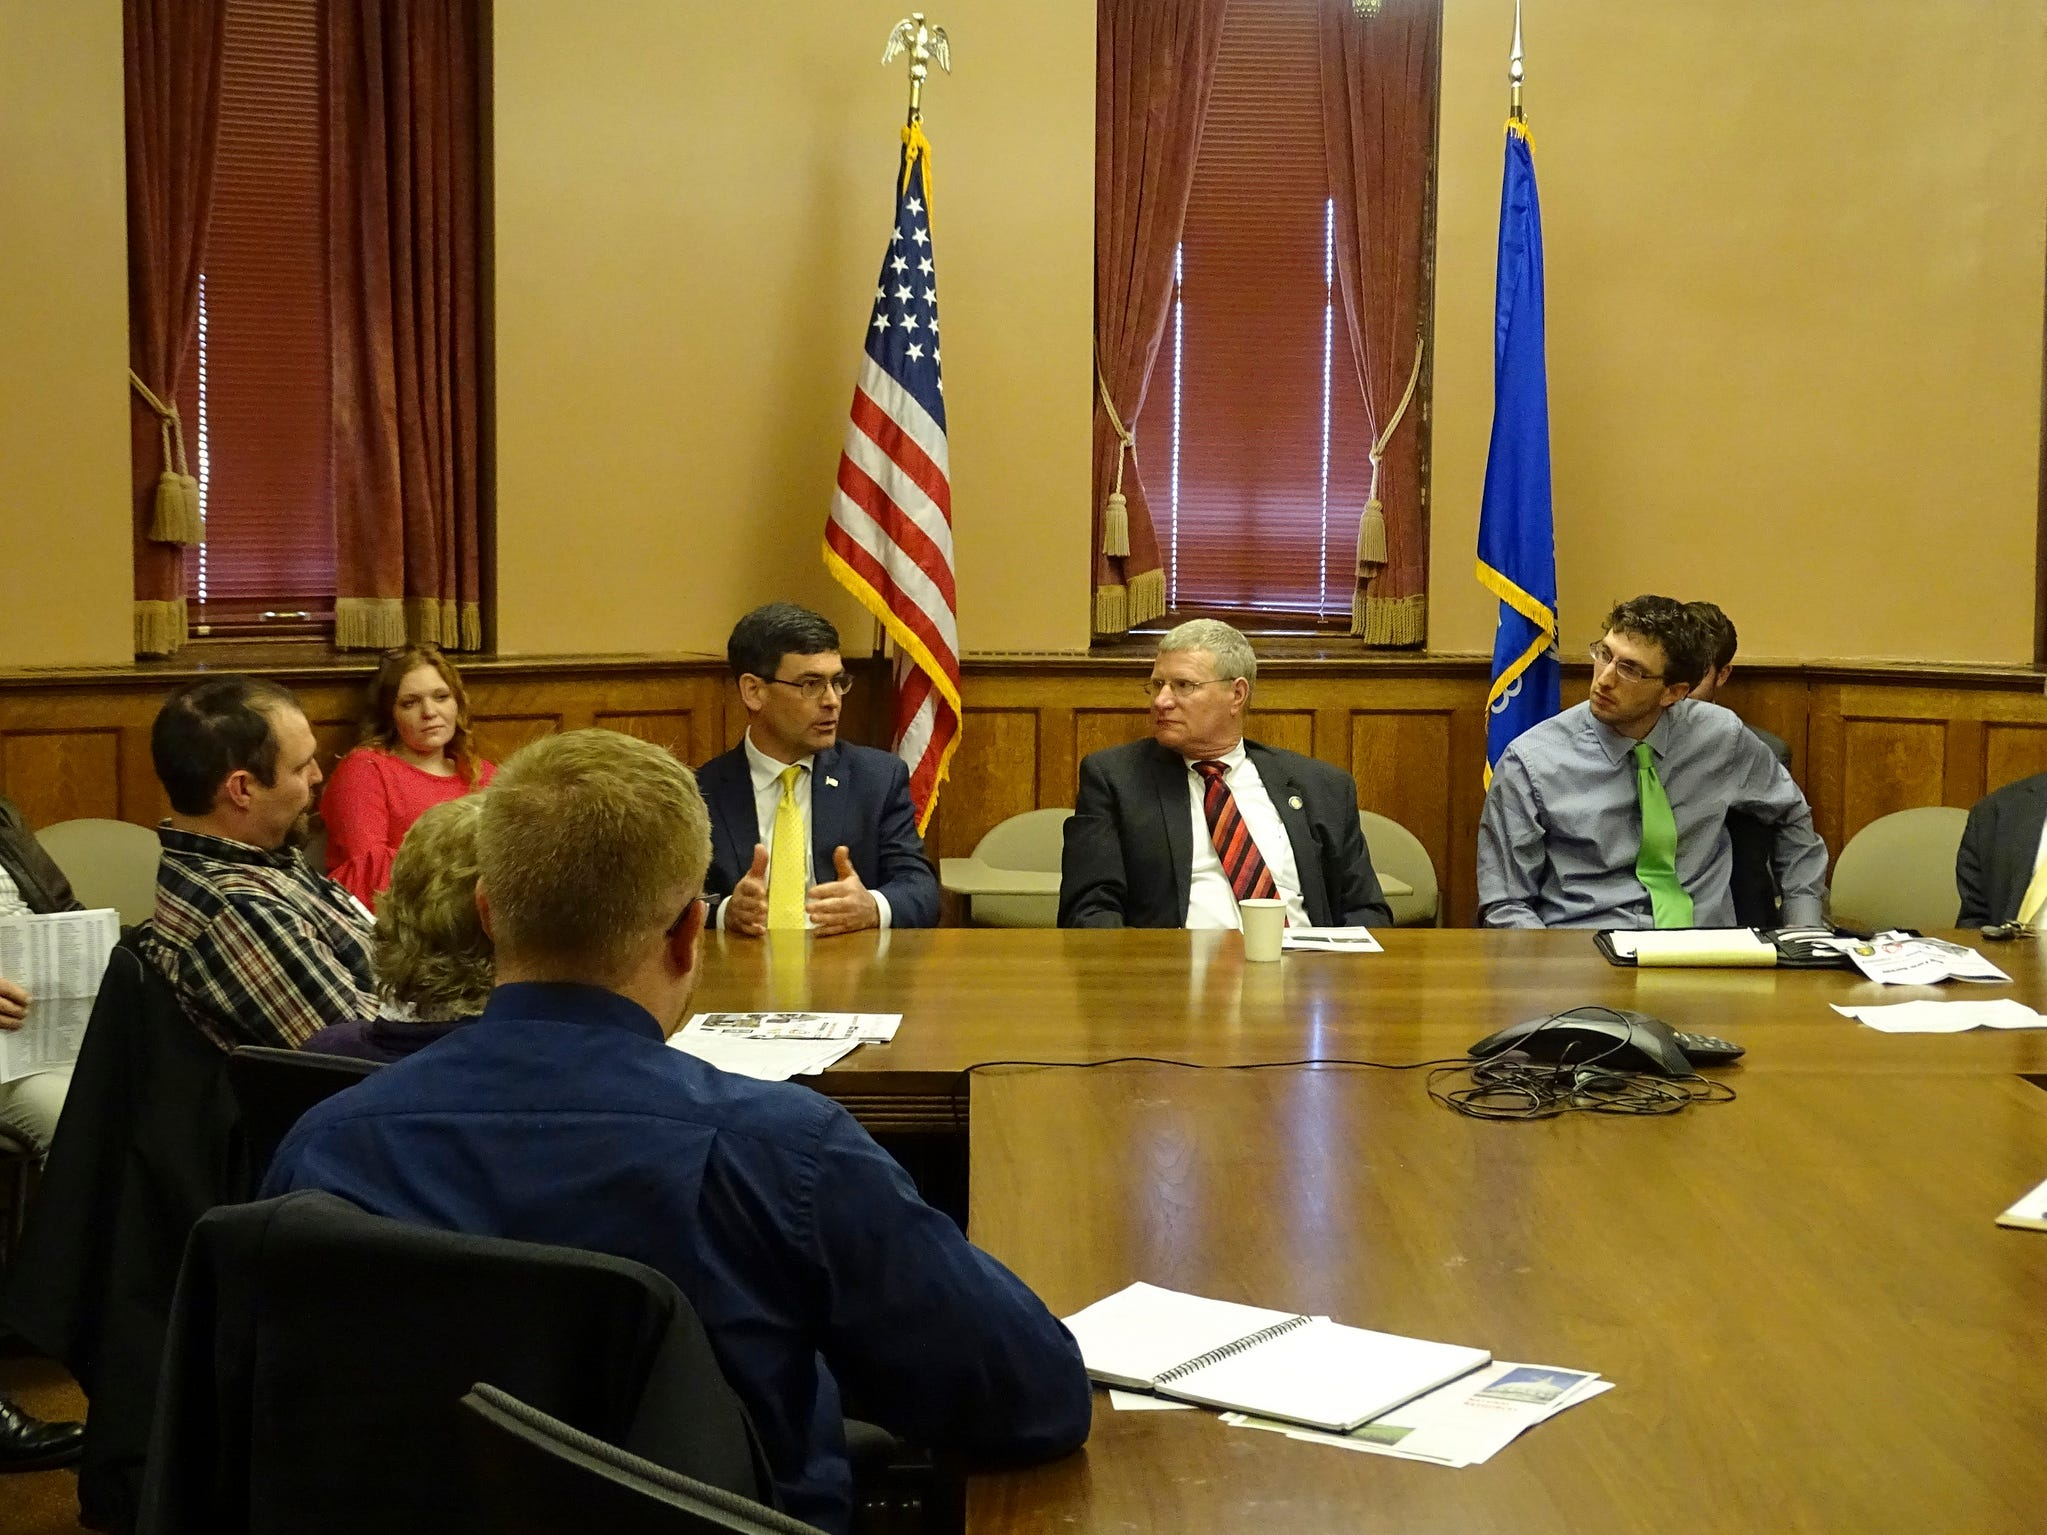 Ag Day at the Capitol attendees listened to guest speakers from various agricultural organizations during a legislative briefing session.